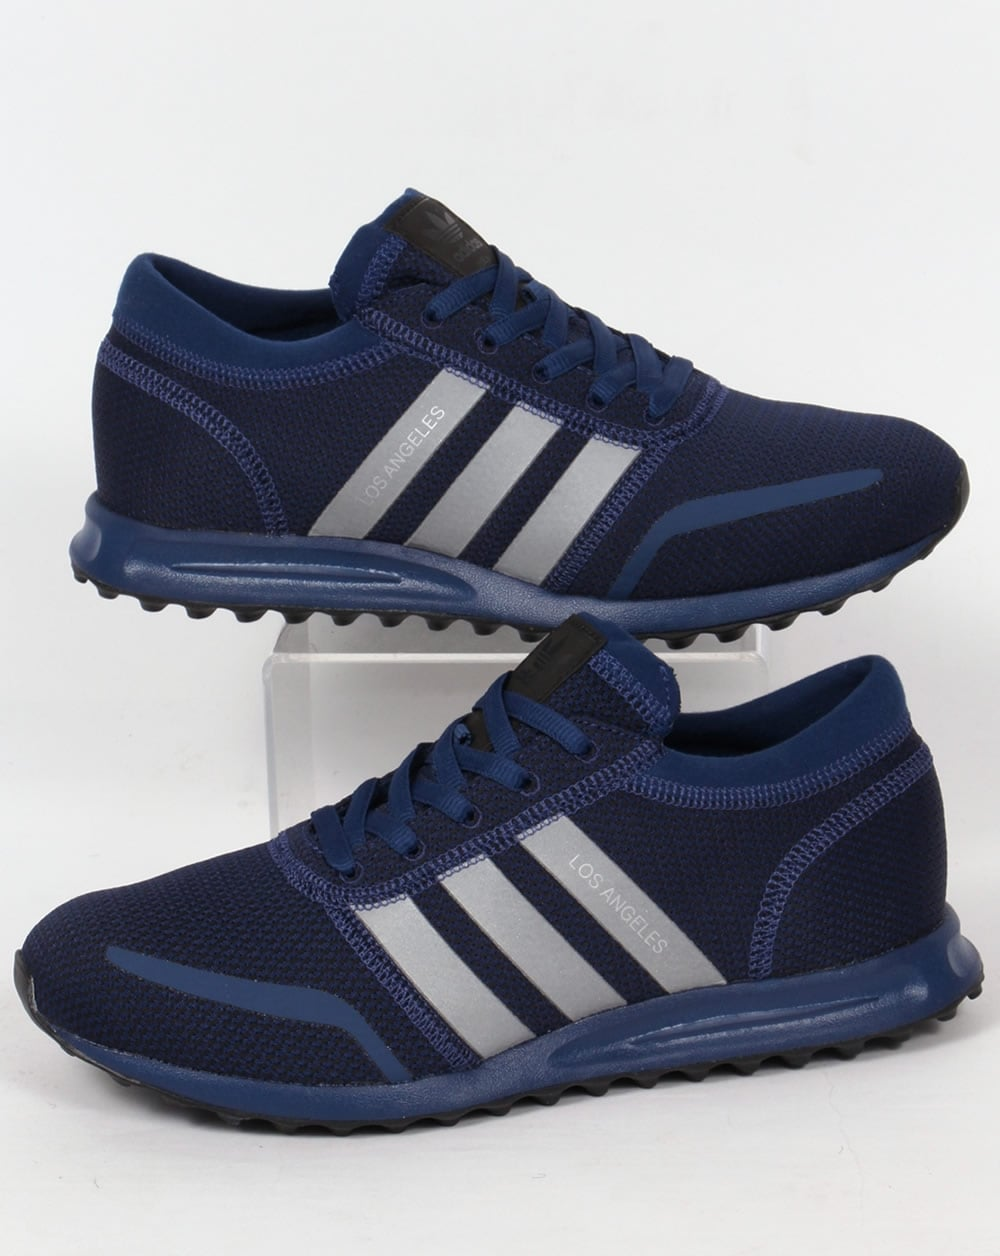 adidas originals Los Angeles: Blue | Sneakers: adidas LA